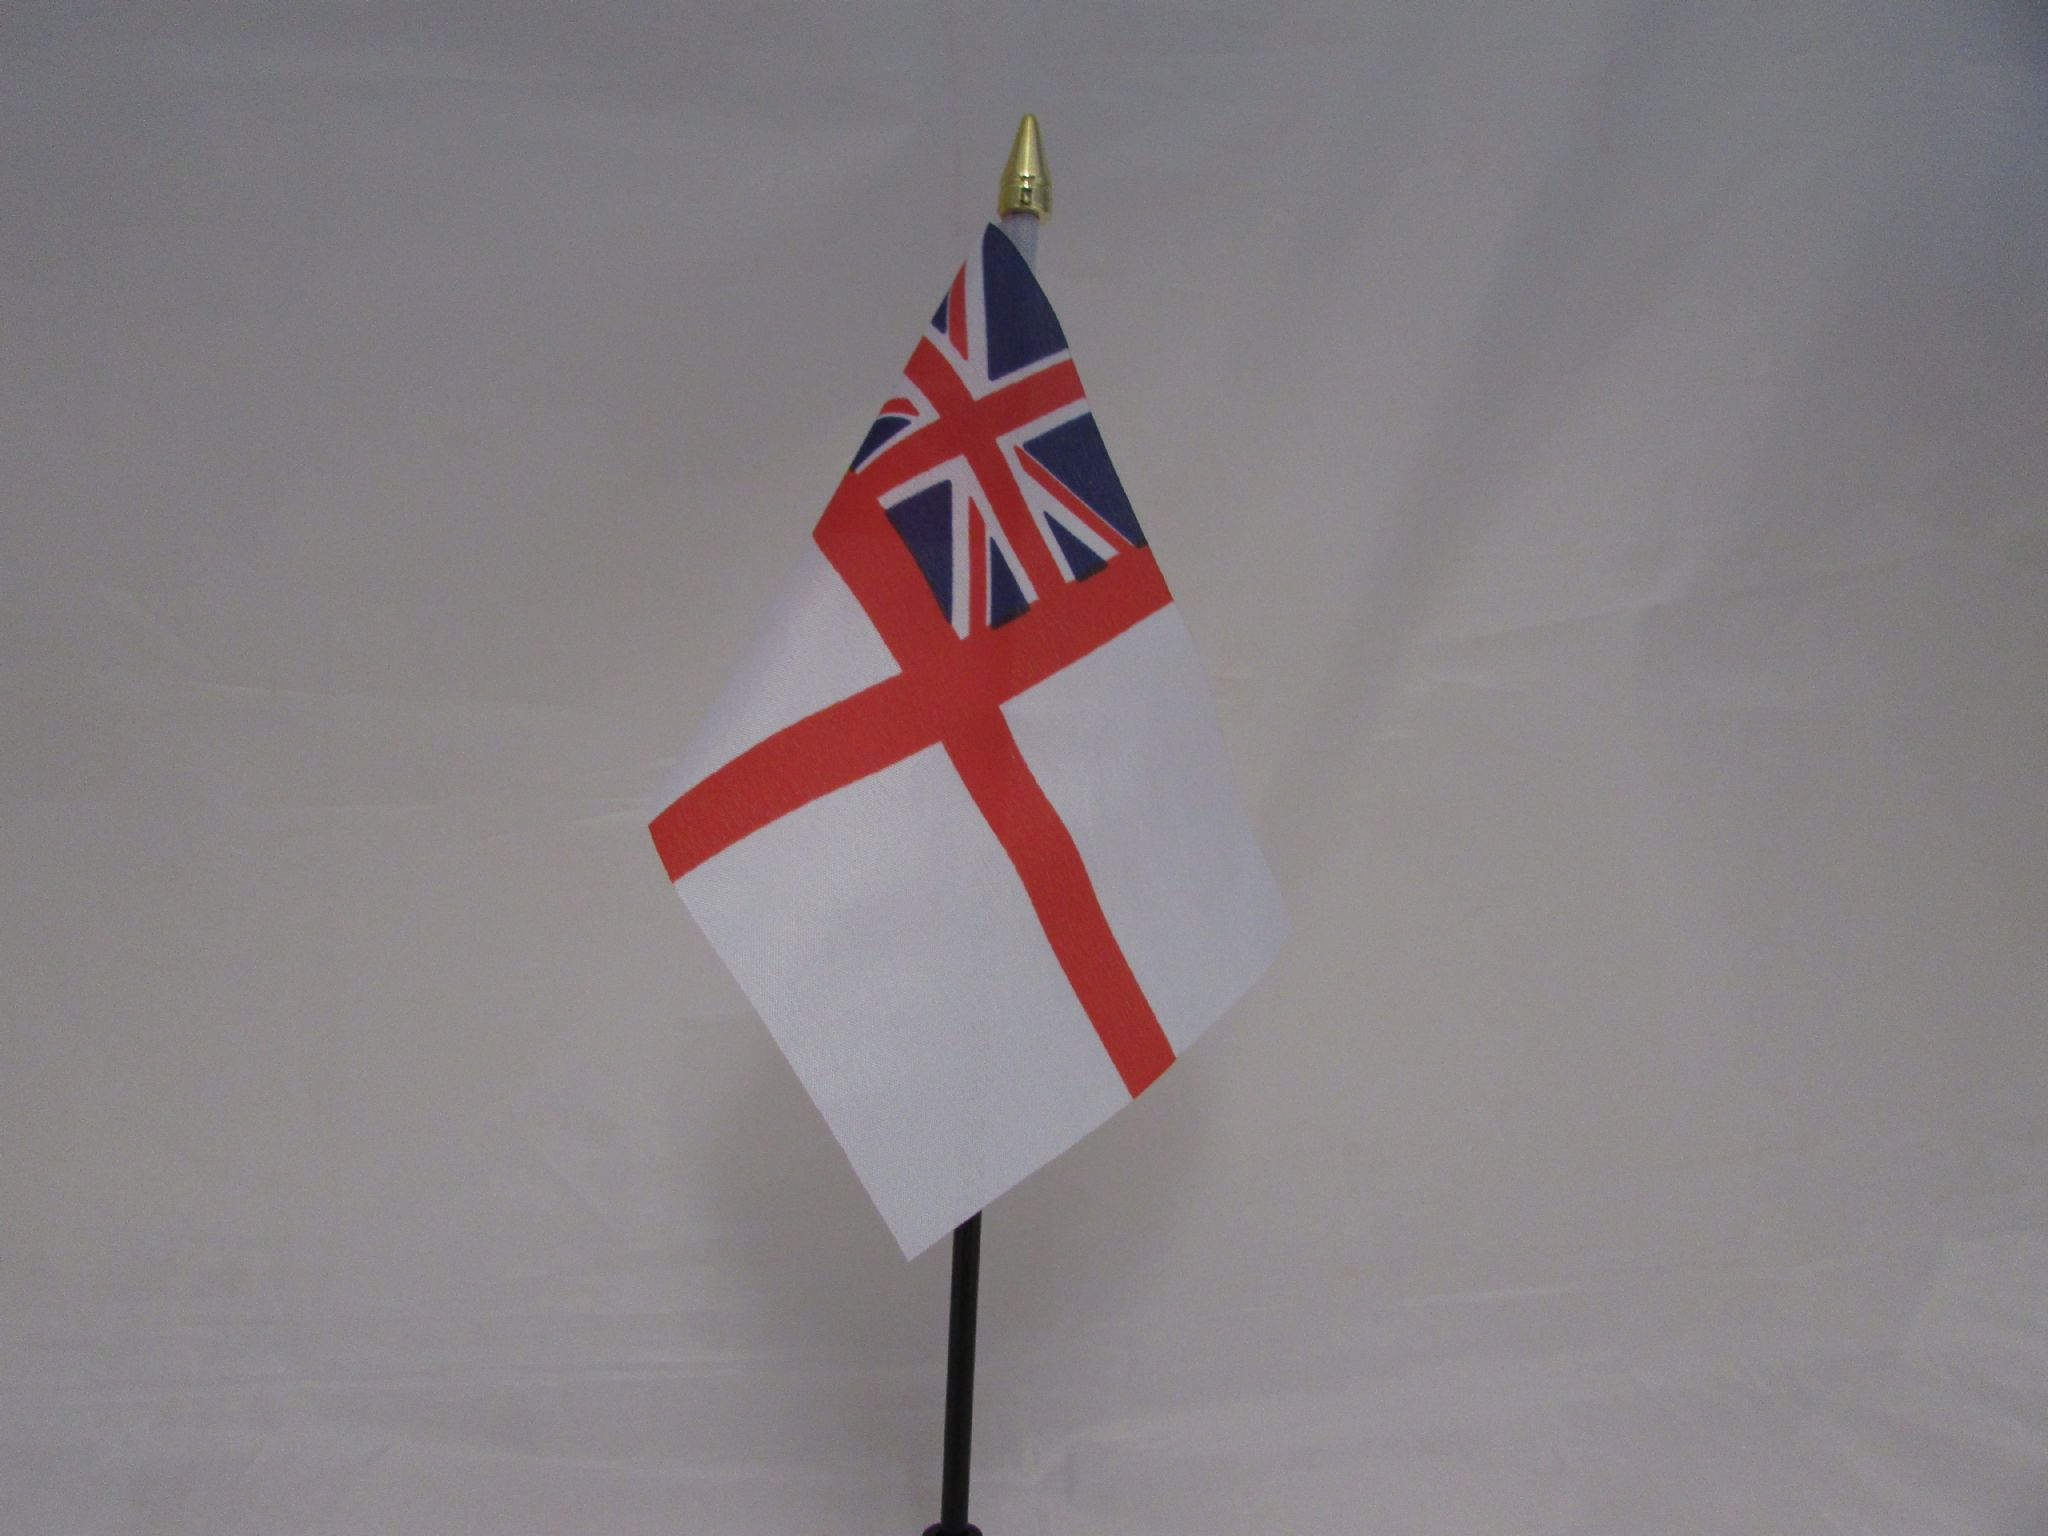 White Ensign Table Flag Plastic Polyester Gold Base 27cm Tall